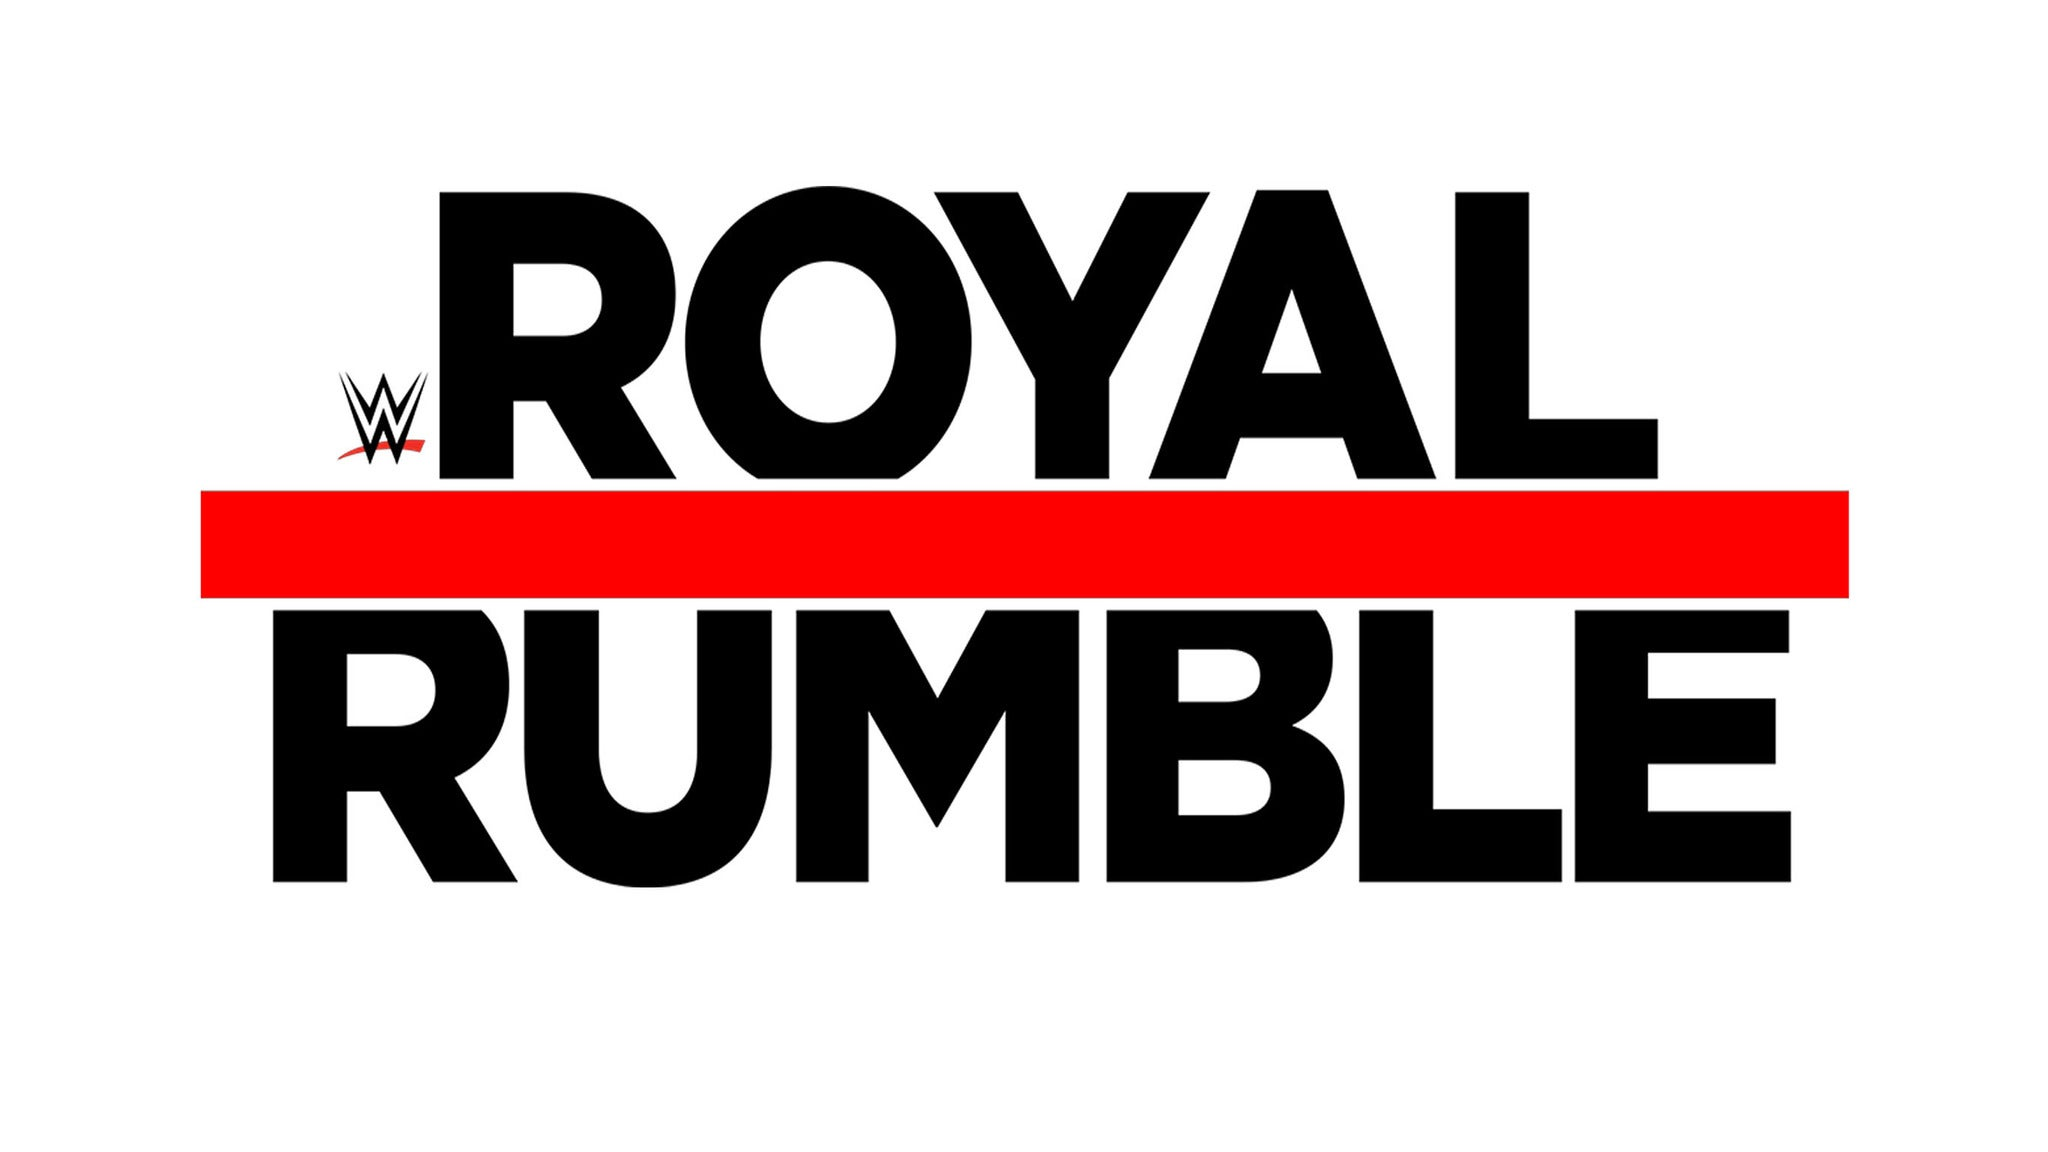 WWE Royal Rumble pre-sale password for live event tickets in St Louis, MO (The Dome at America's Center)